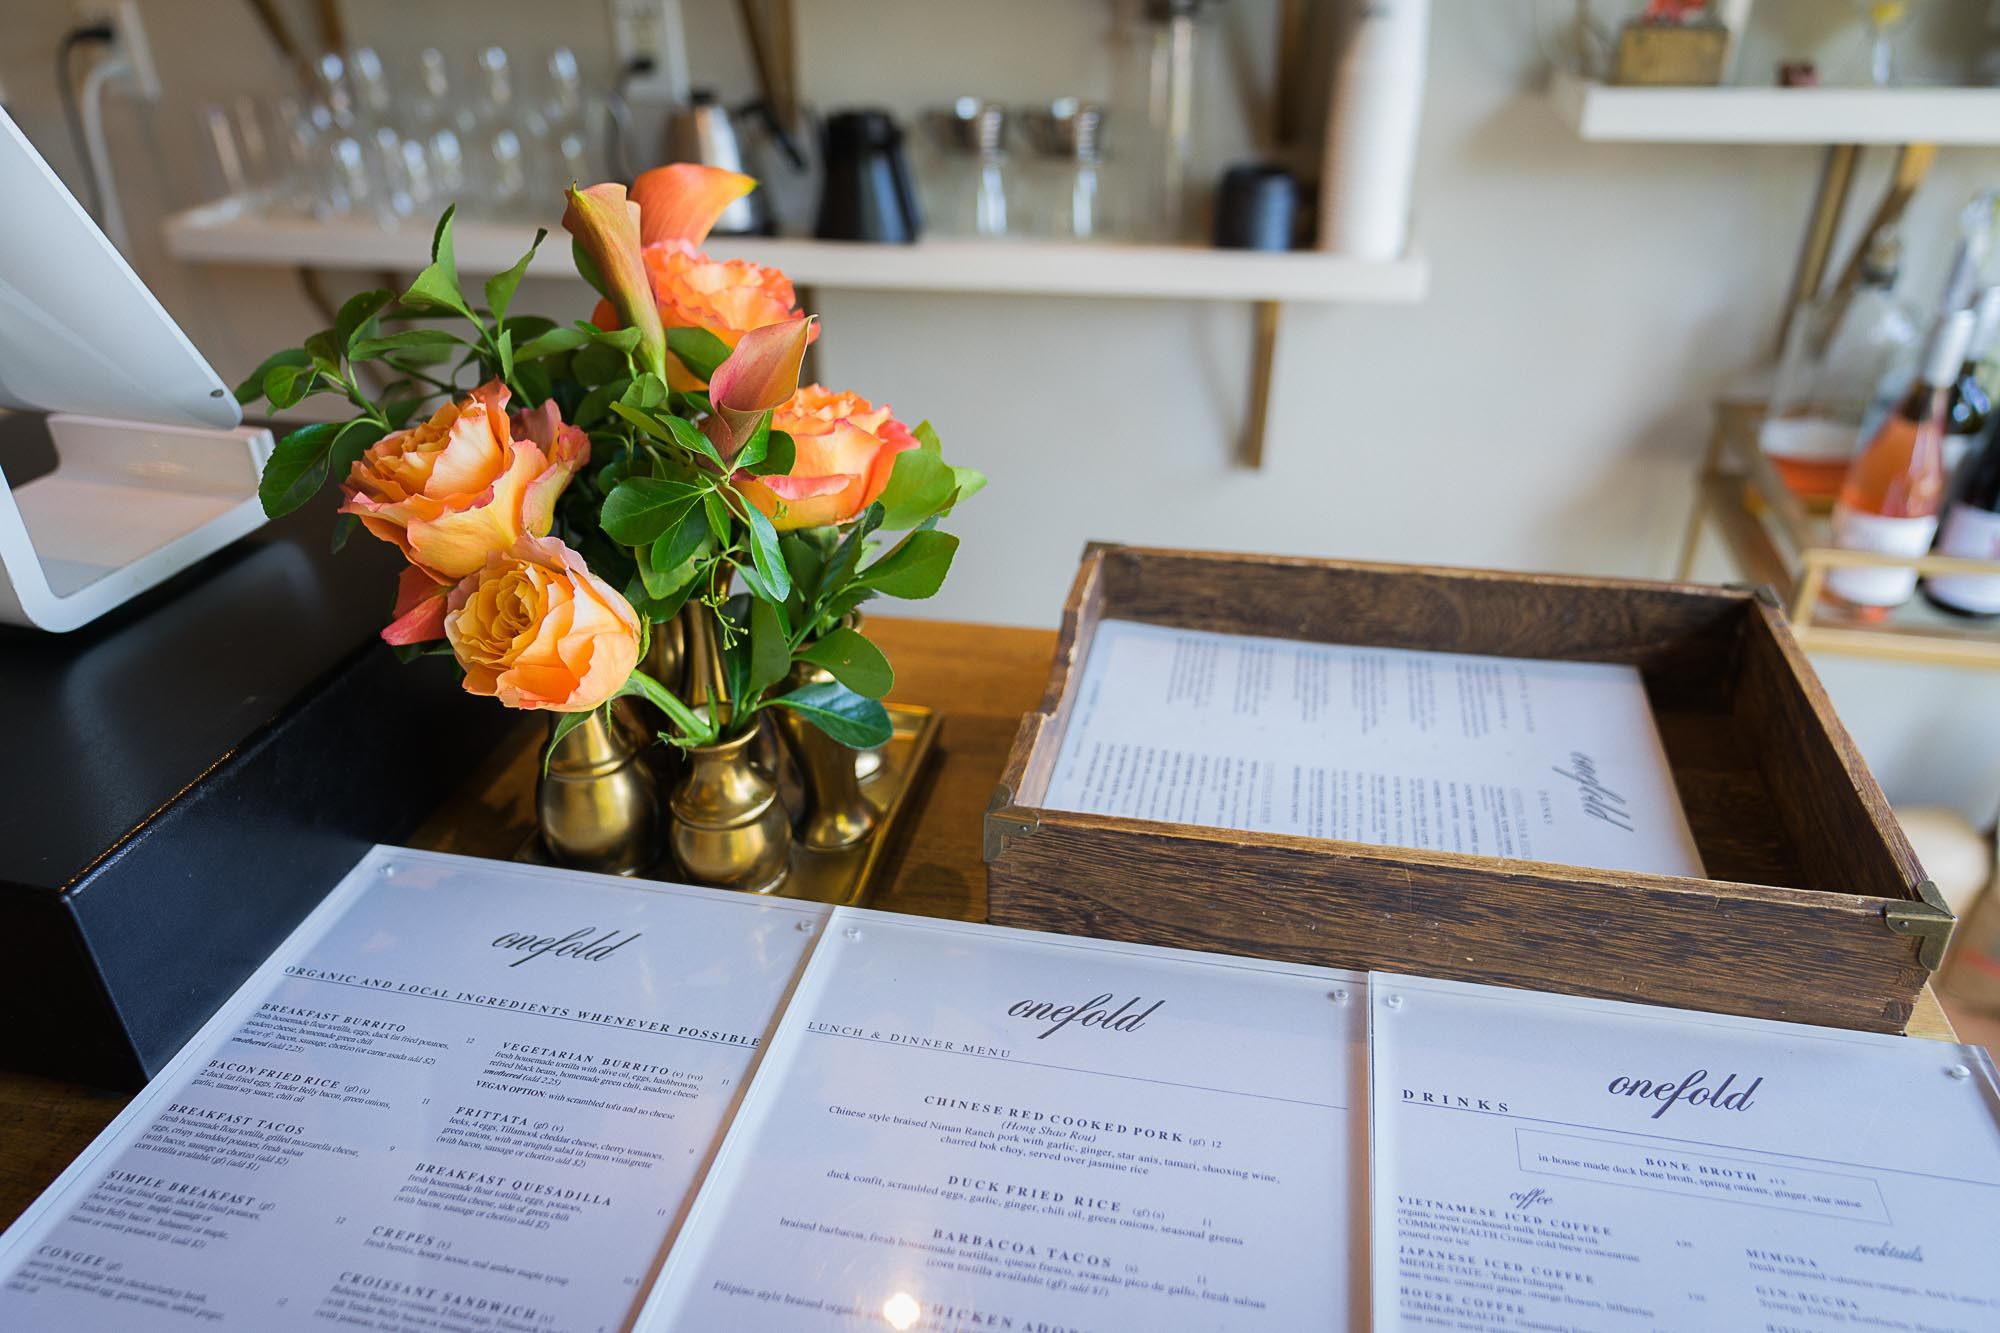 Menus sit on a tablr at Onefold in Denver